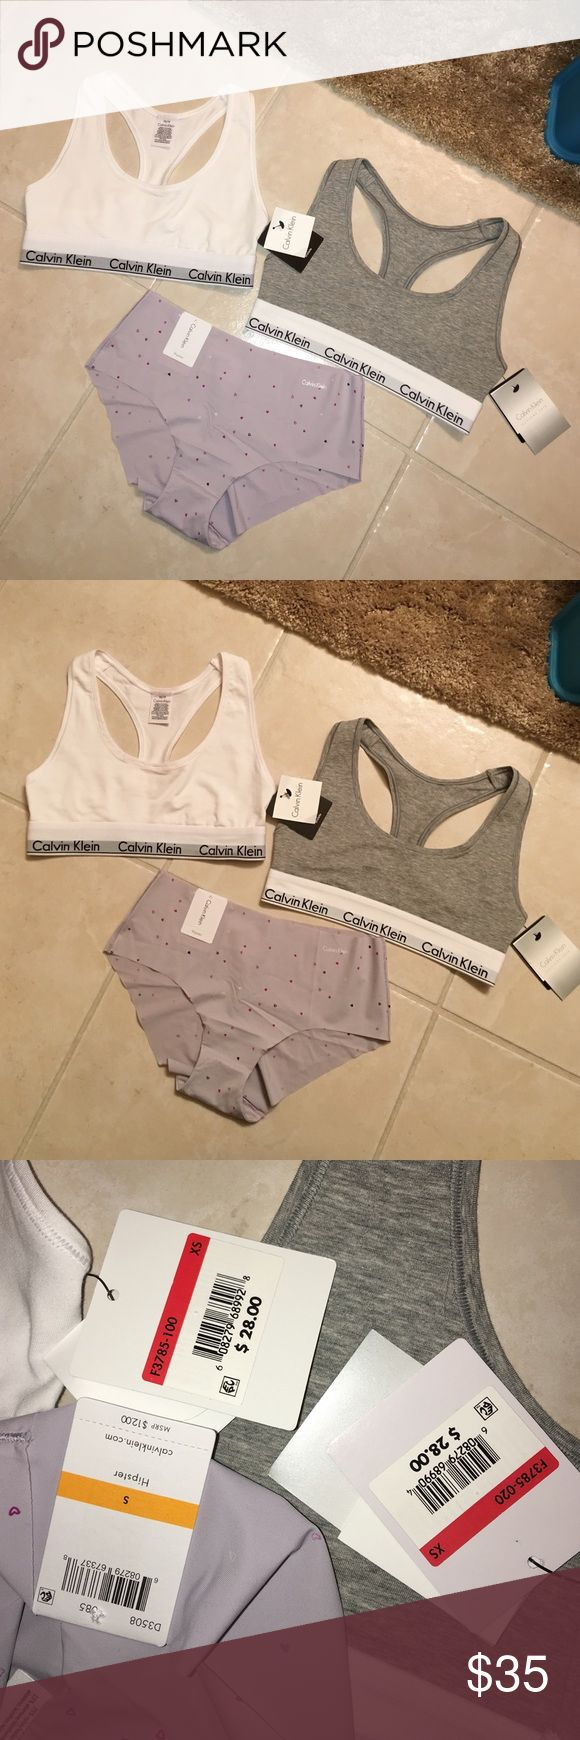 Brand New Calvin Klein Bralette and Underwear Brand new and never worn Calvin Klein 2 Bralettes and 1 purple/grayish hipster underwear! New with tags and authentic perfect and really cozy to sleep in in absolute perfect condition and quality. Taking reasonable offers(: Calvin Klein Intimates & Sleepwear Bras